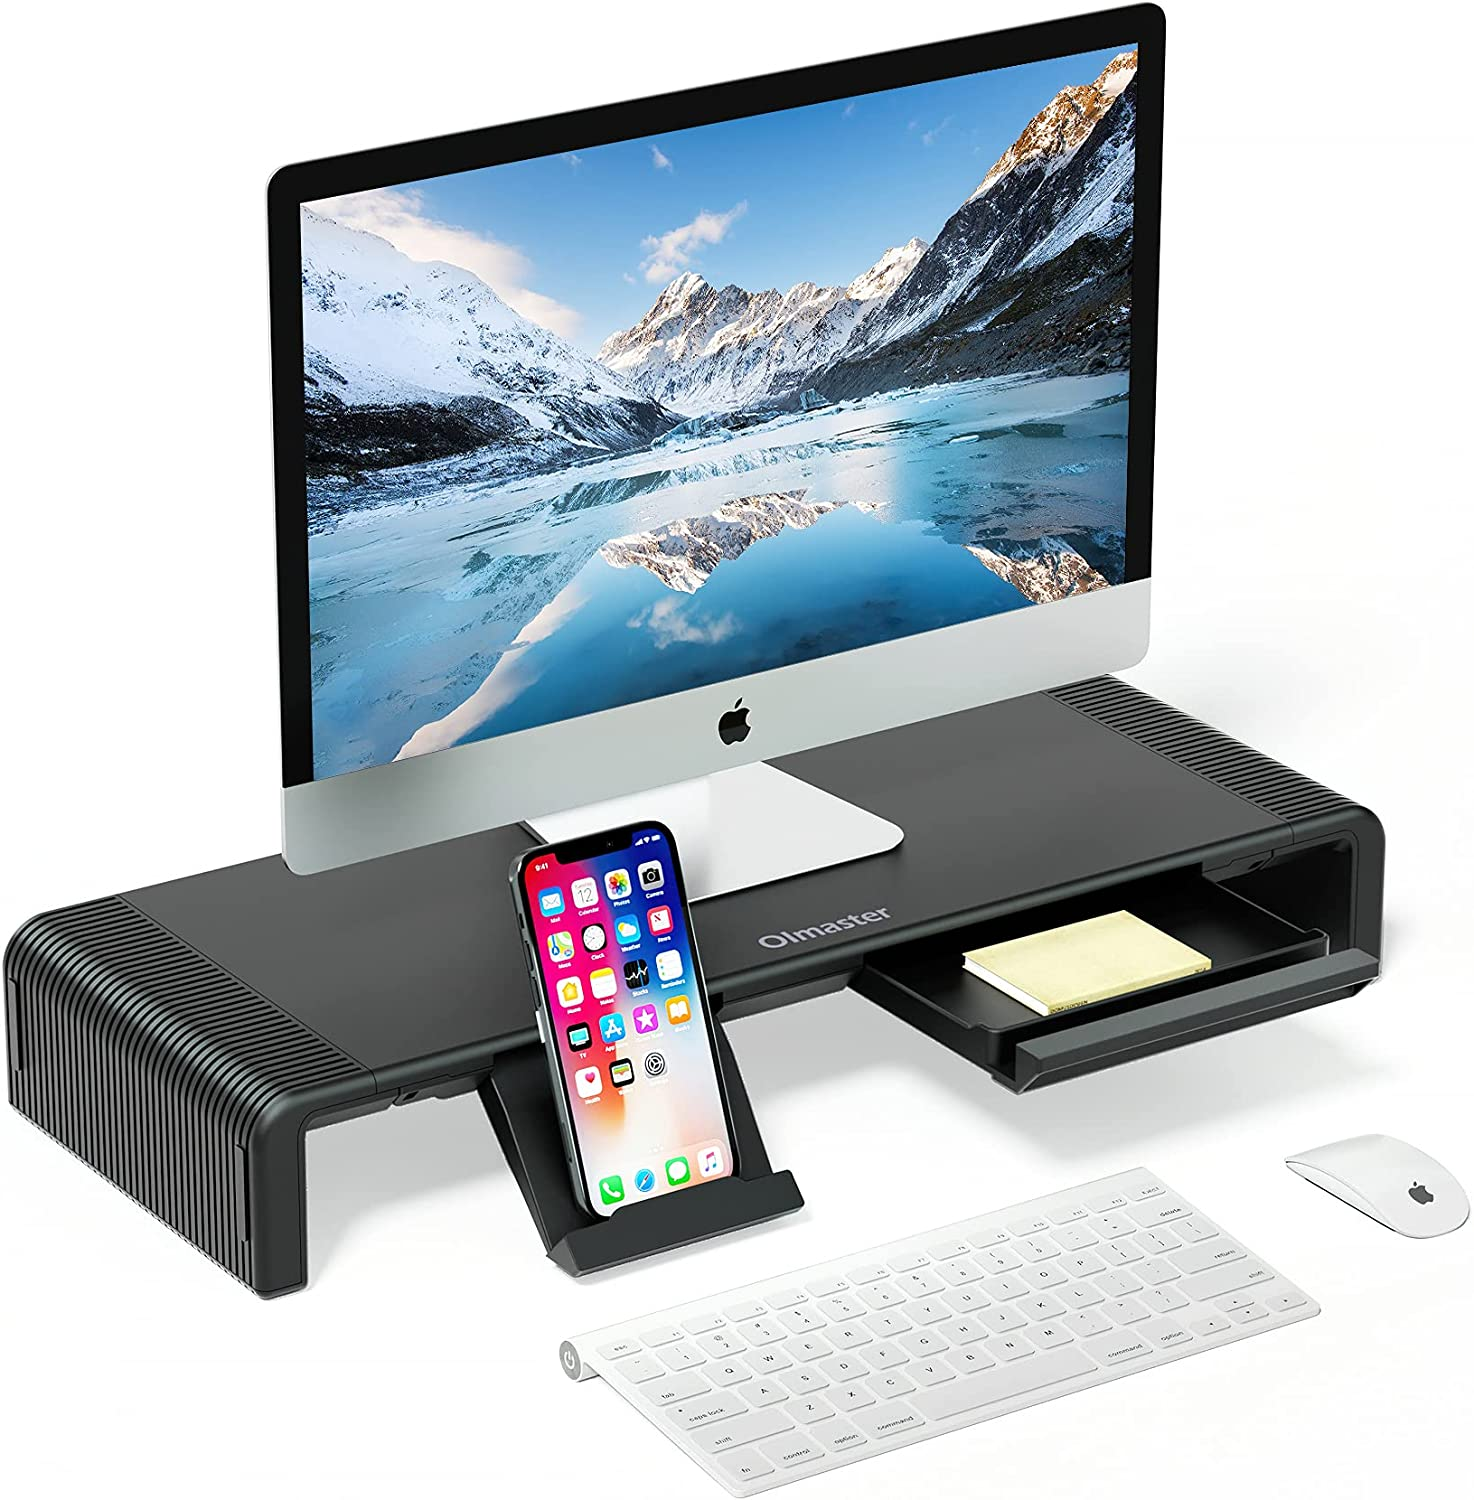 Monitor Stand Riser, Foldable Computer Monitor Riser, Adjustable Height Computer Stand and Storage Drawer & Pen Slot, Phone Stand for Computer, Desktop, Laptop, Save Space (Model A-Black)